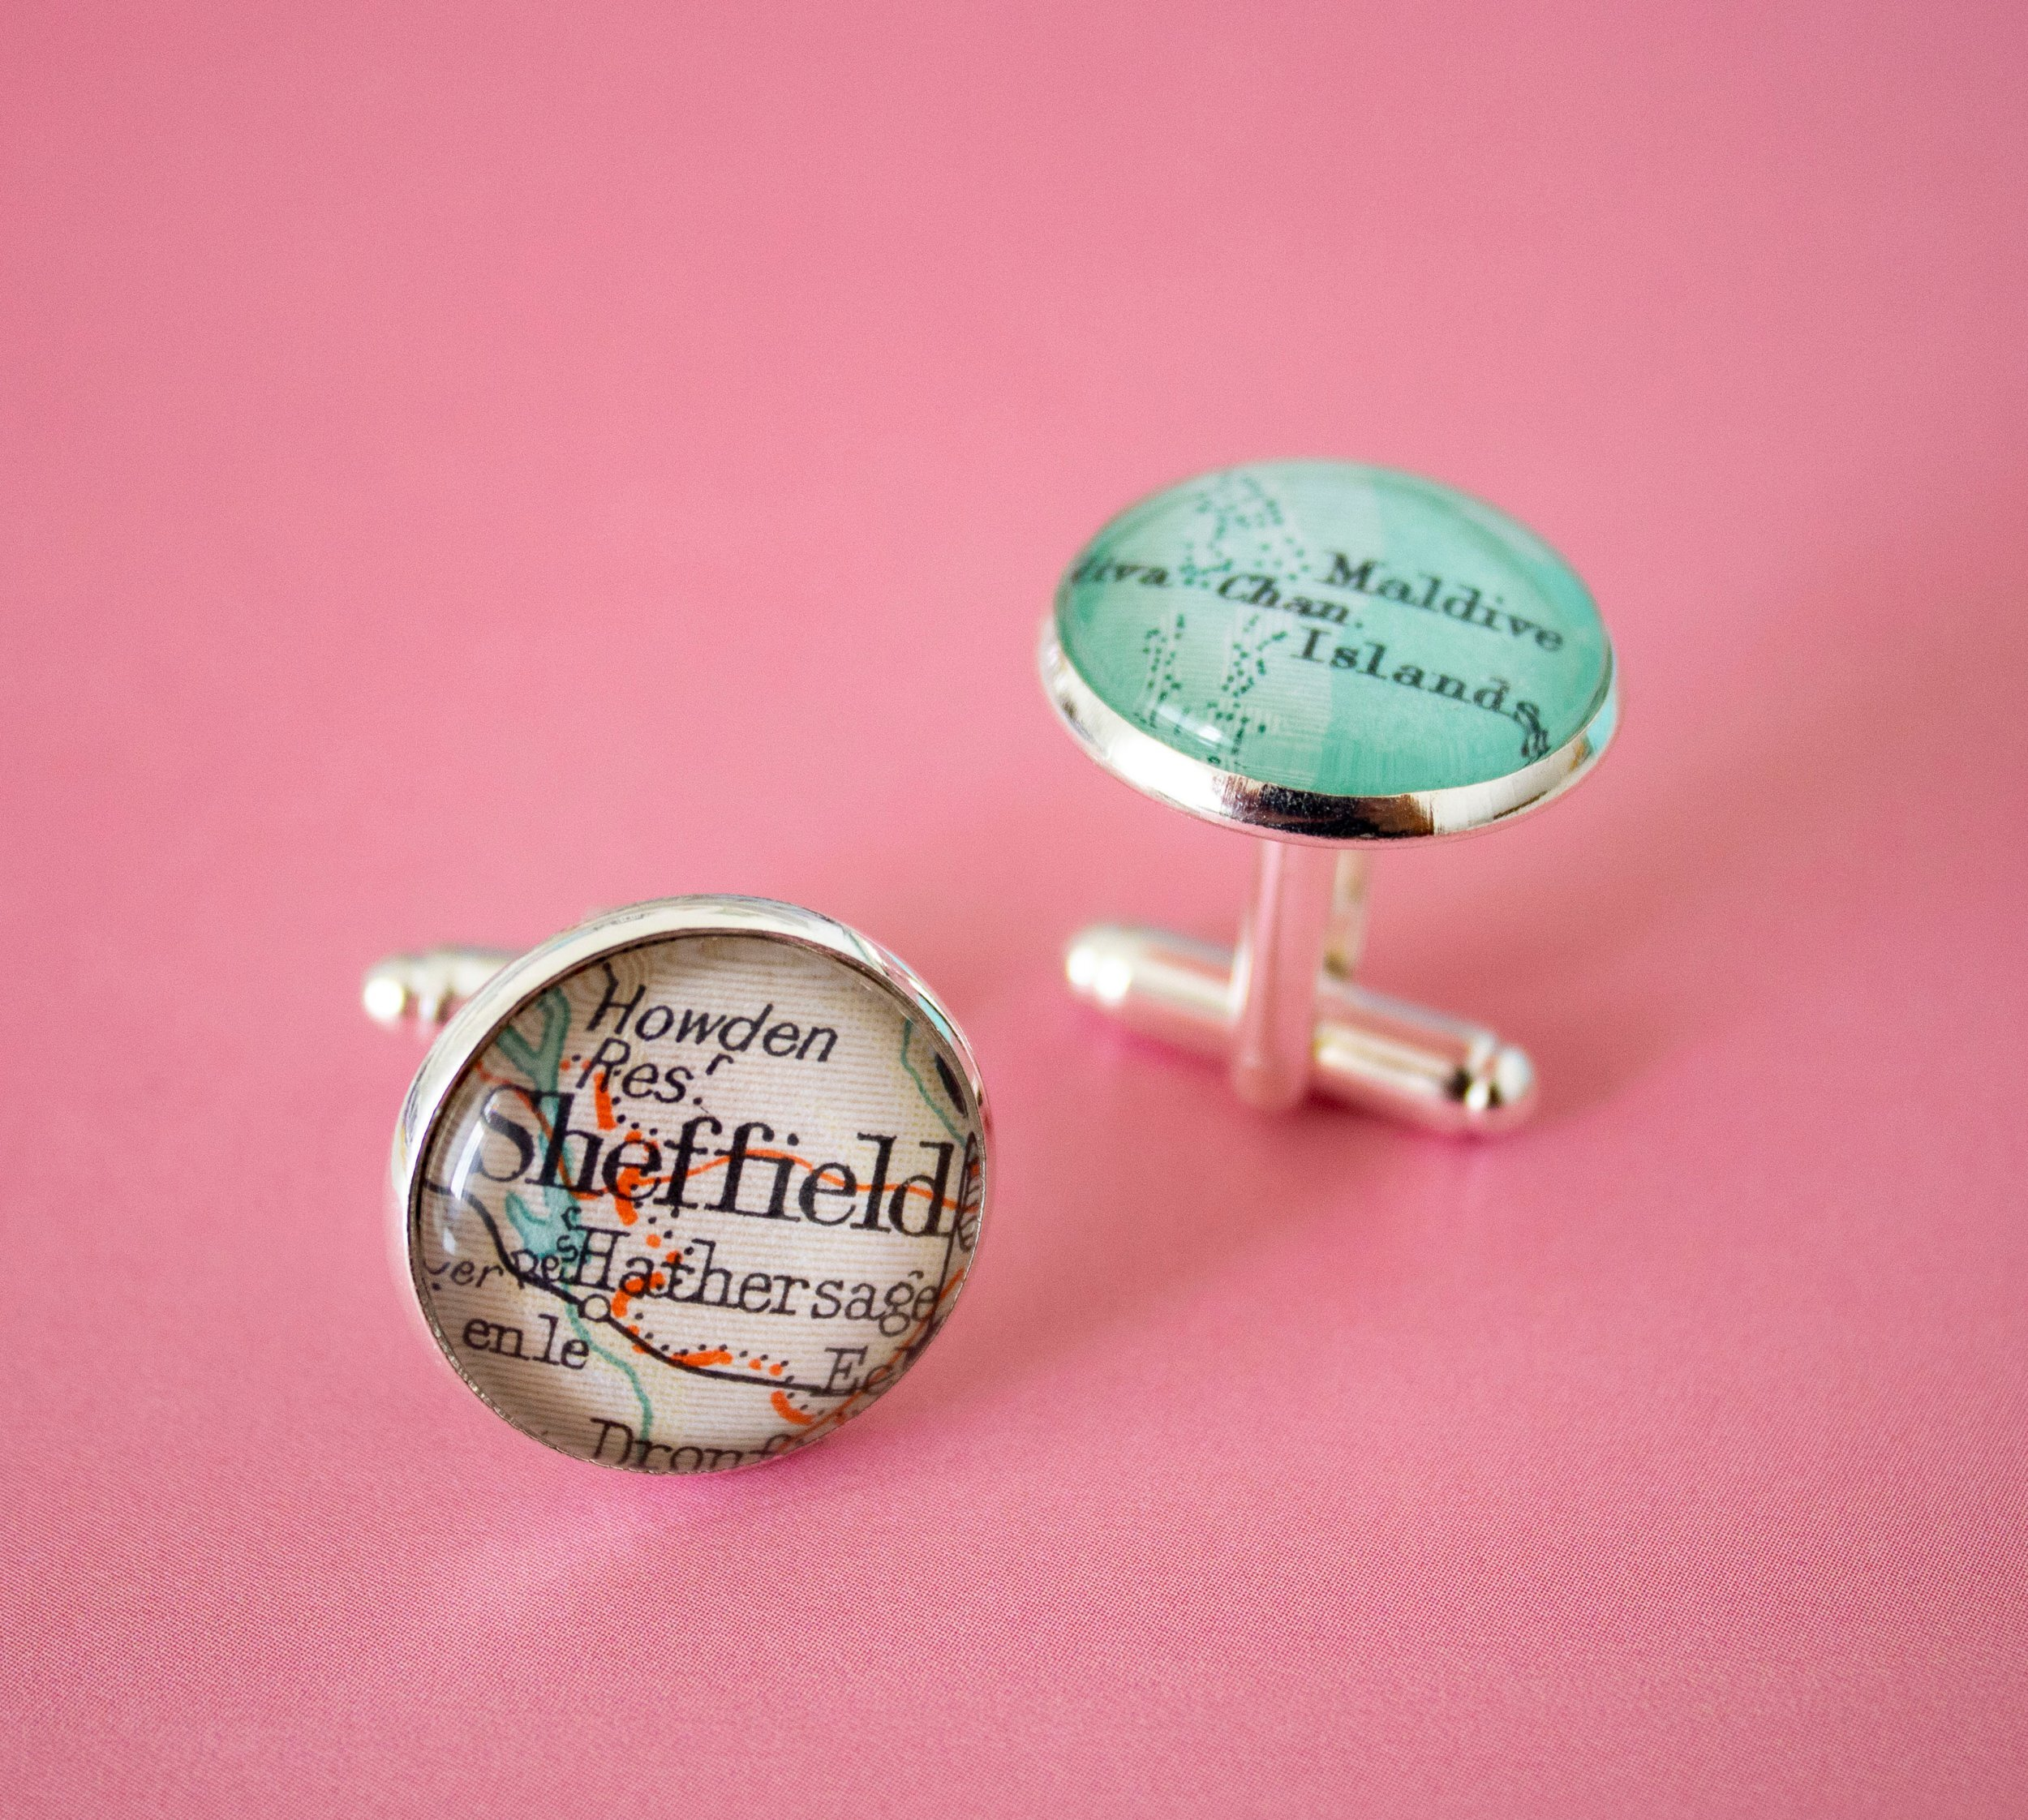 The Token Hunter Travel Charms and Souvenirs Wedding Favours Gifts 00006.JPG